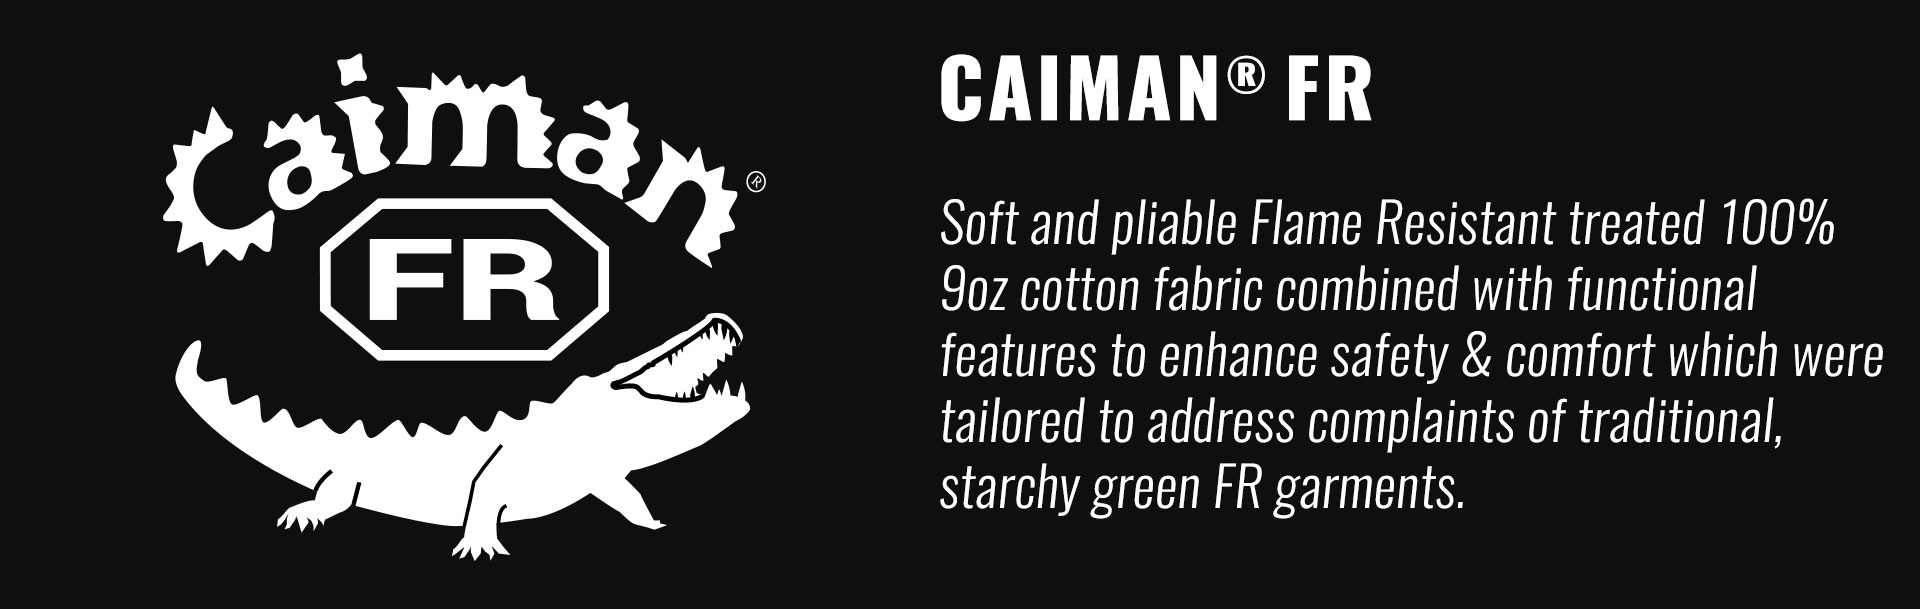 Caiman Gloves Flame Resistant